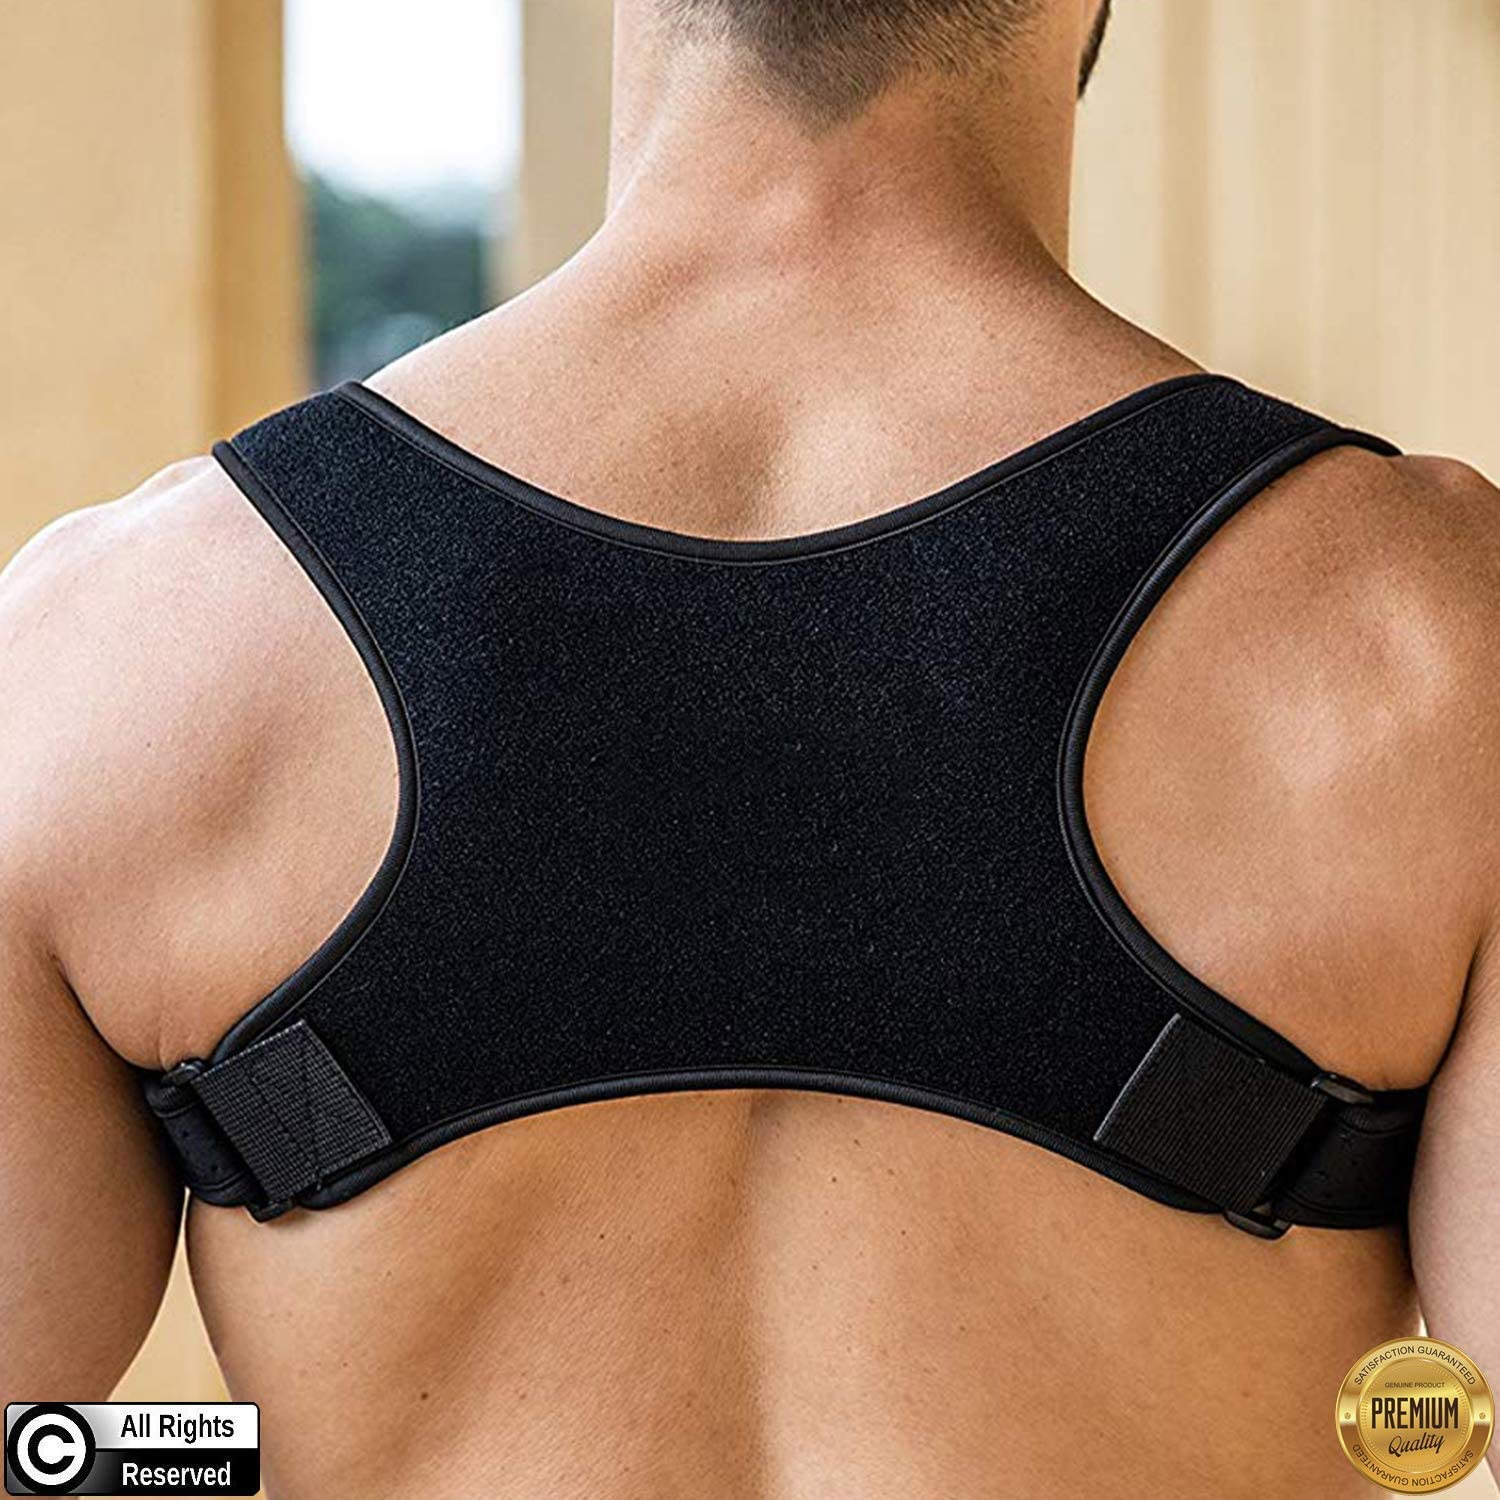 Posture Corrector for Men and Women | Discreet Under Clothes Comfortable and Effective Clavicle Brace